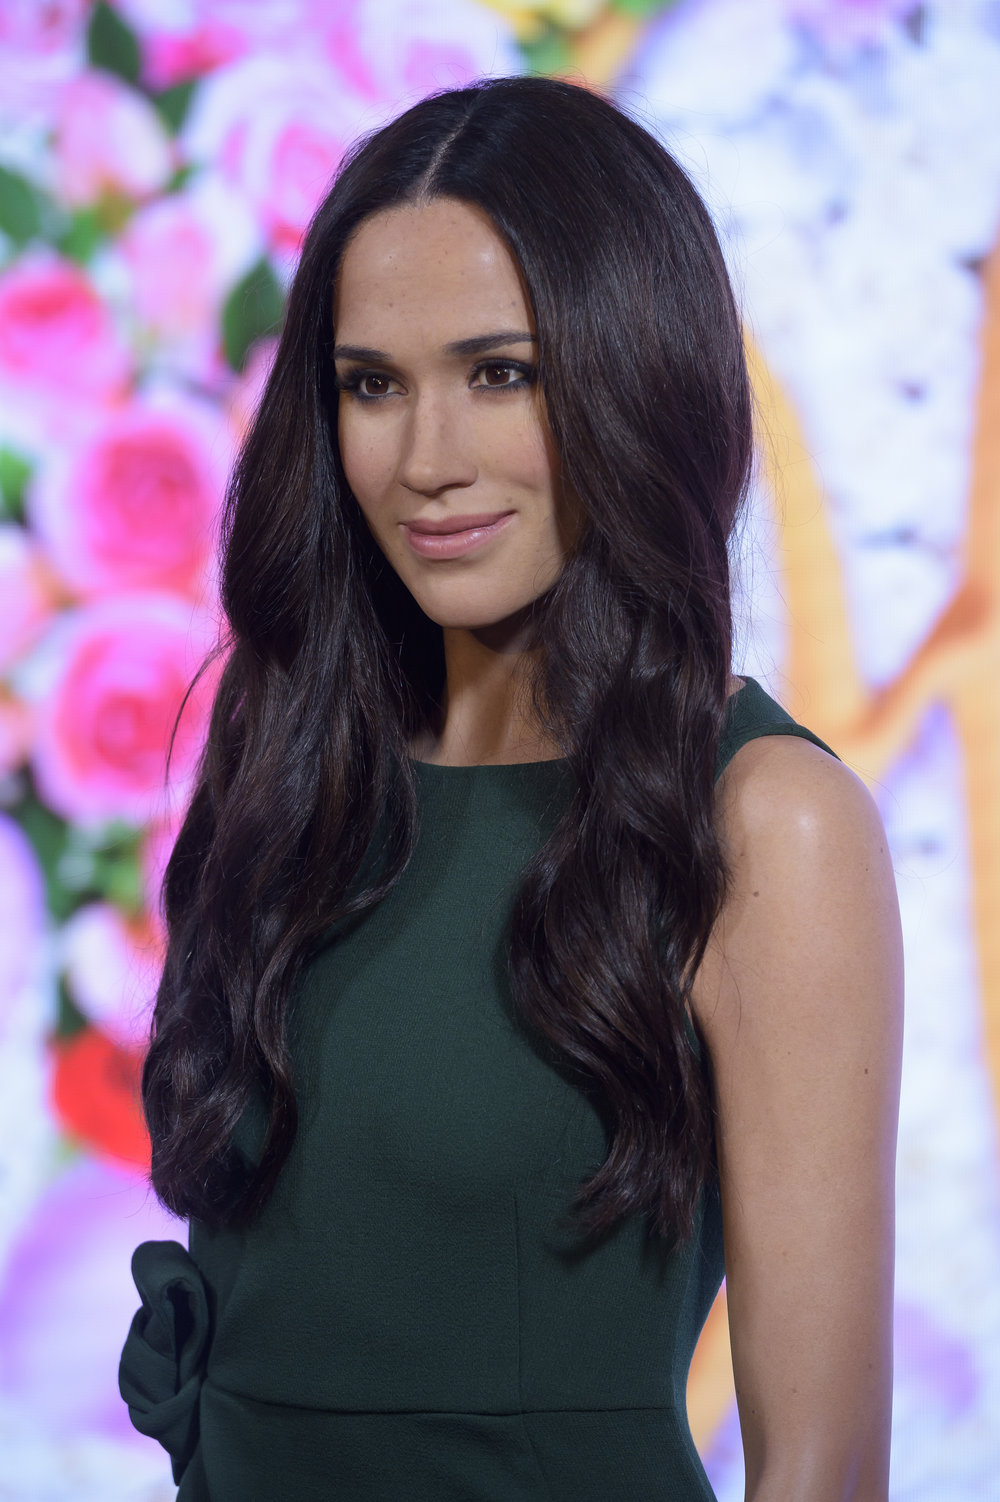 The Markle Sparkle arrives at Madame Tussauds London - 09.05 (4).jpg